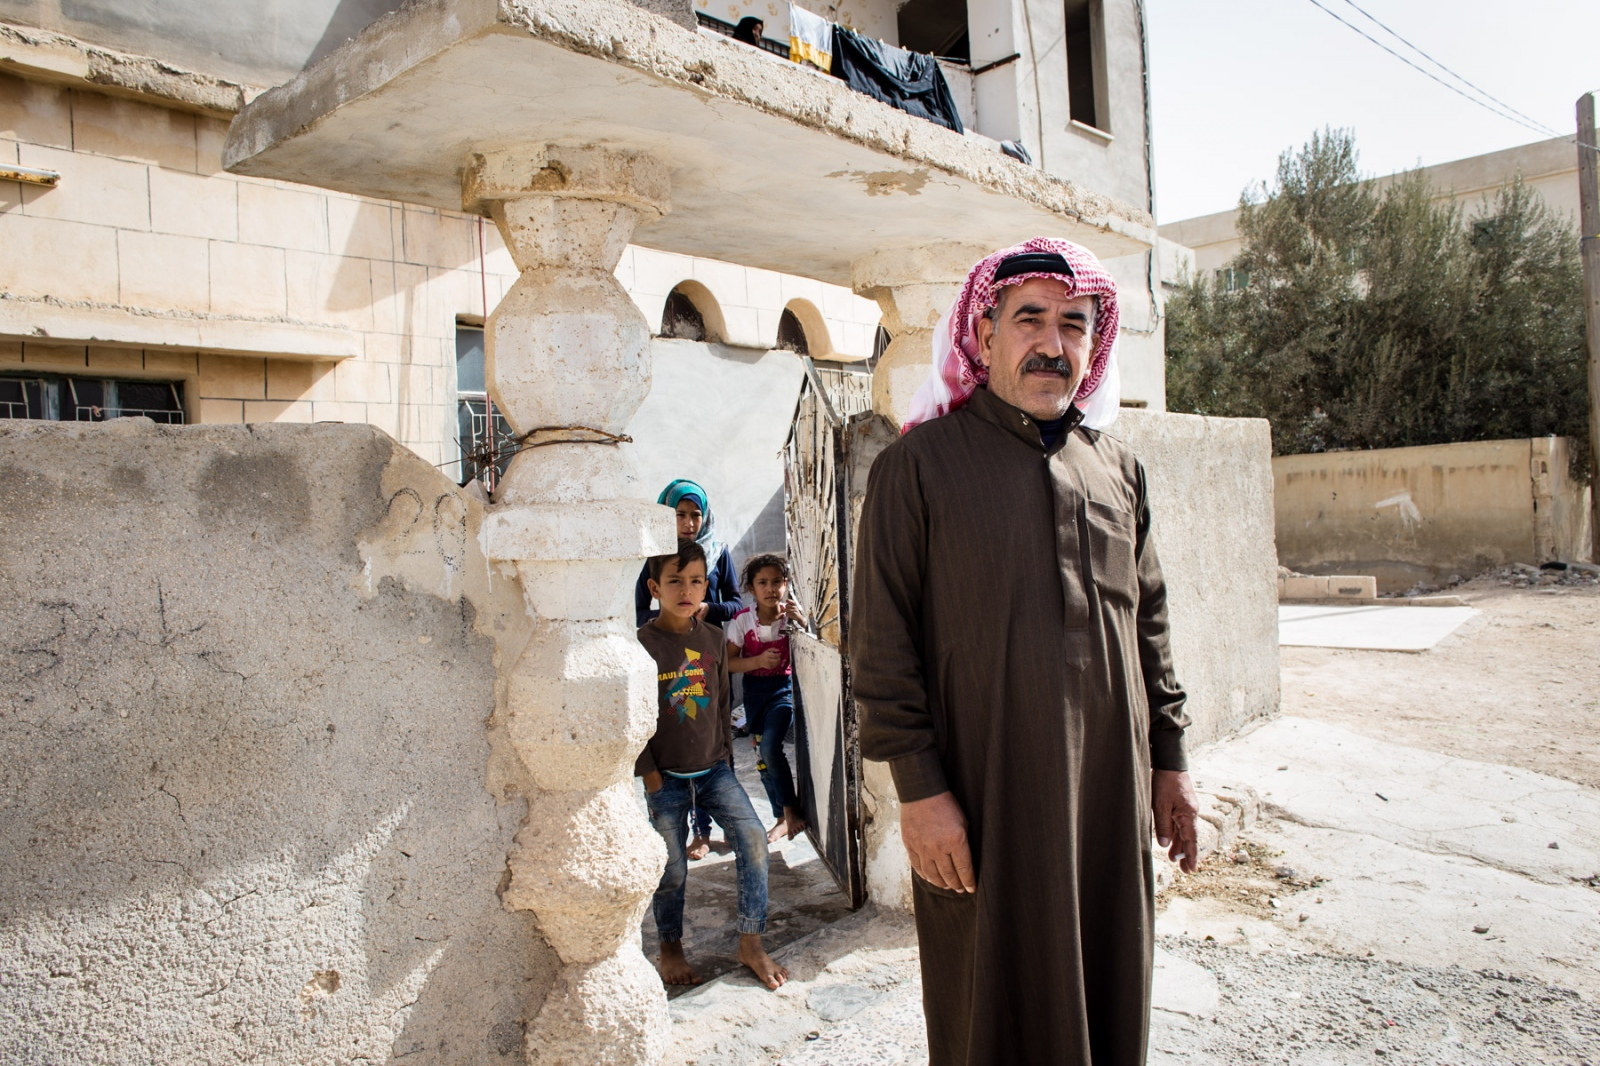 Abu Mohammed, 48, from Aleppo, lives in Mafraq, Jordan. He has two wives, and with his children and other relatives, he is responsible for taking care of about 30 people in his household. The family can't afford to pay for work permits, so he and his older sons do odd jobs in construction and agriculture to earn a living.